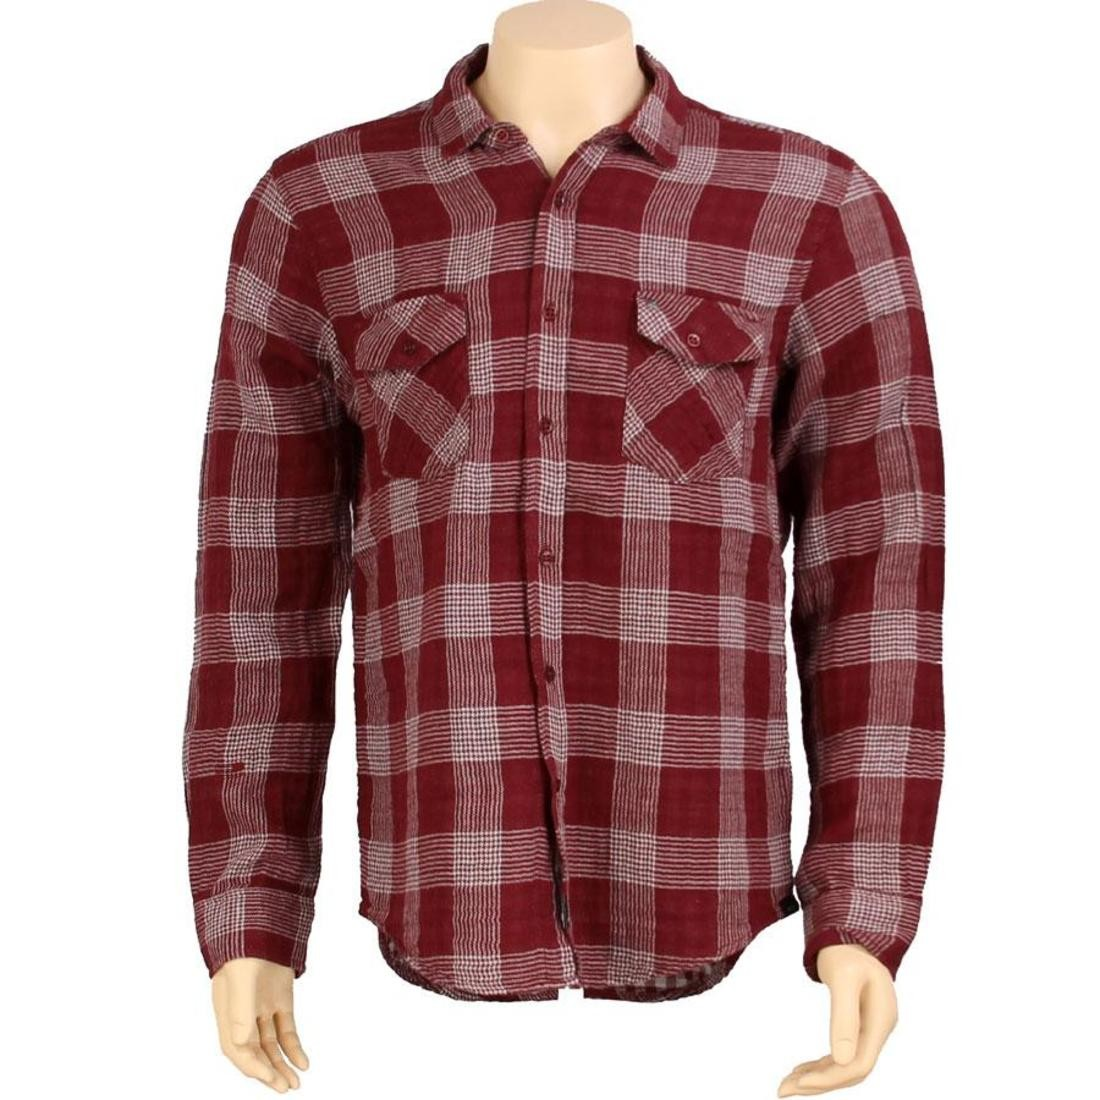 KR3W Hardee Long Sleeve Shirt (burgundy)